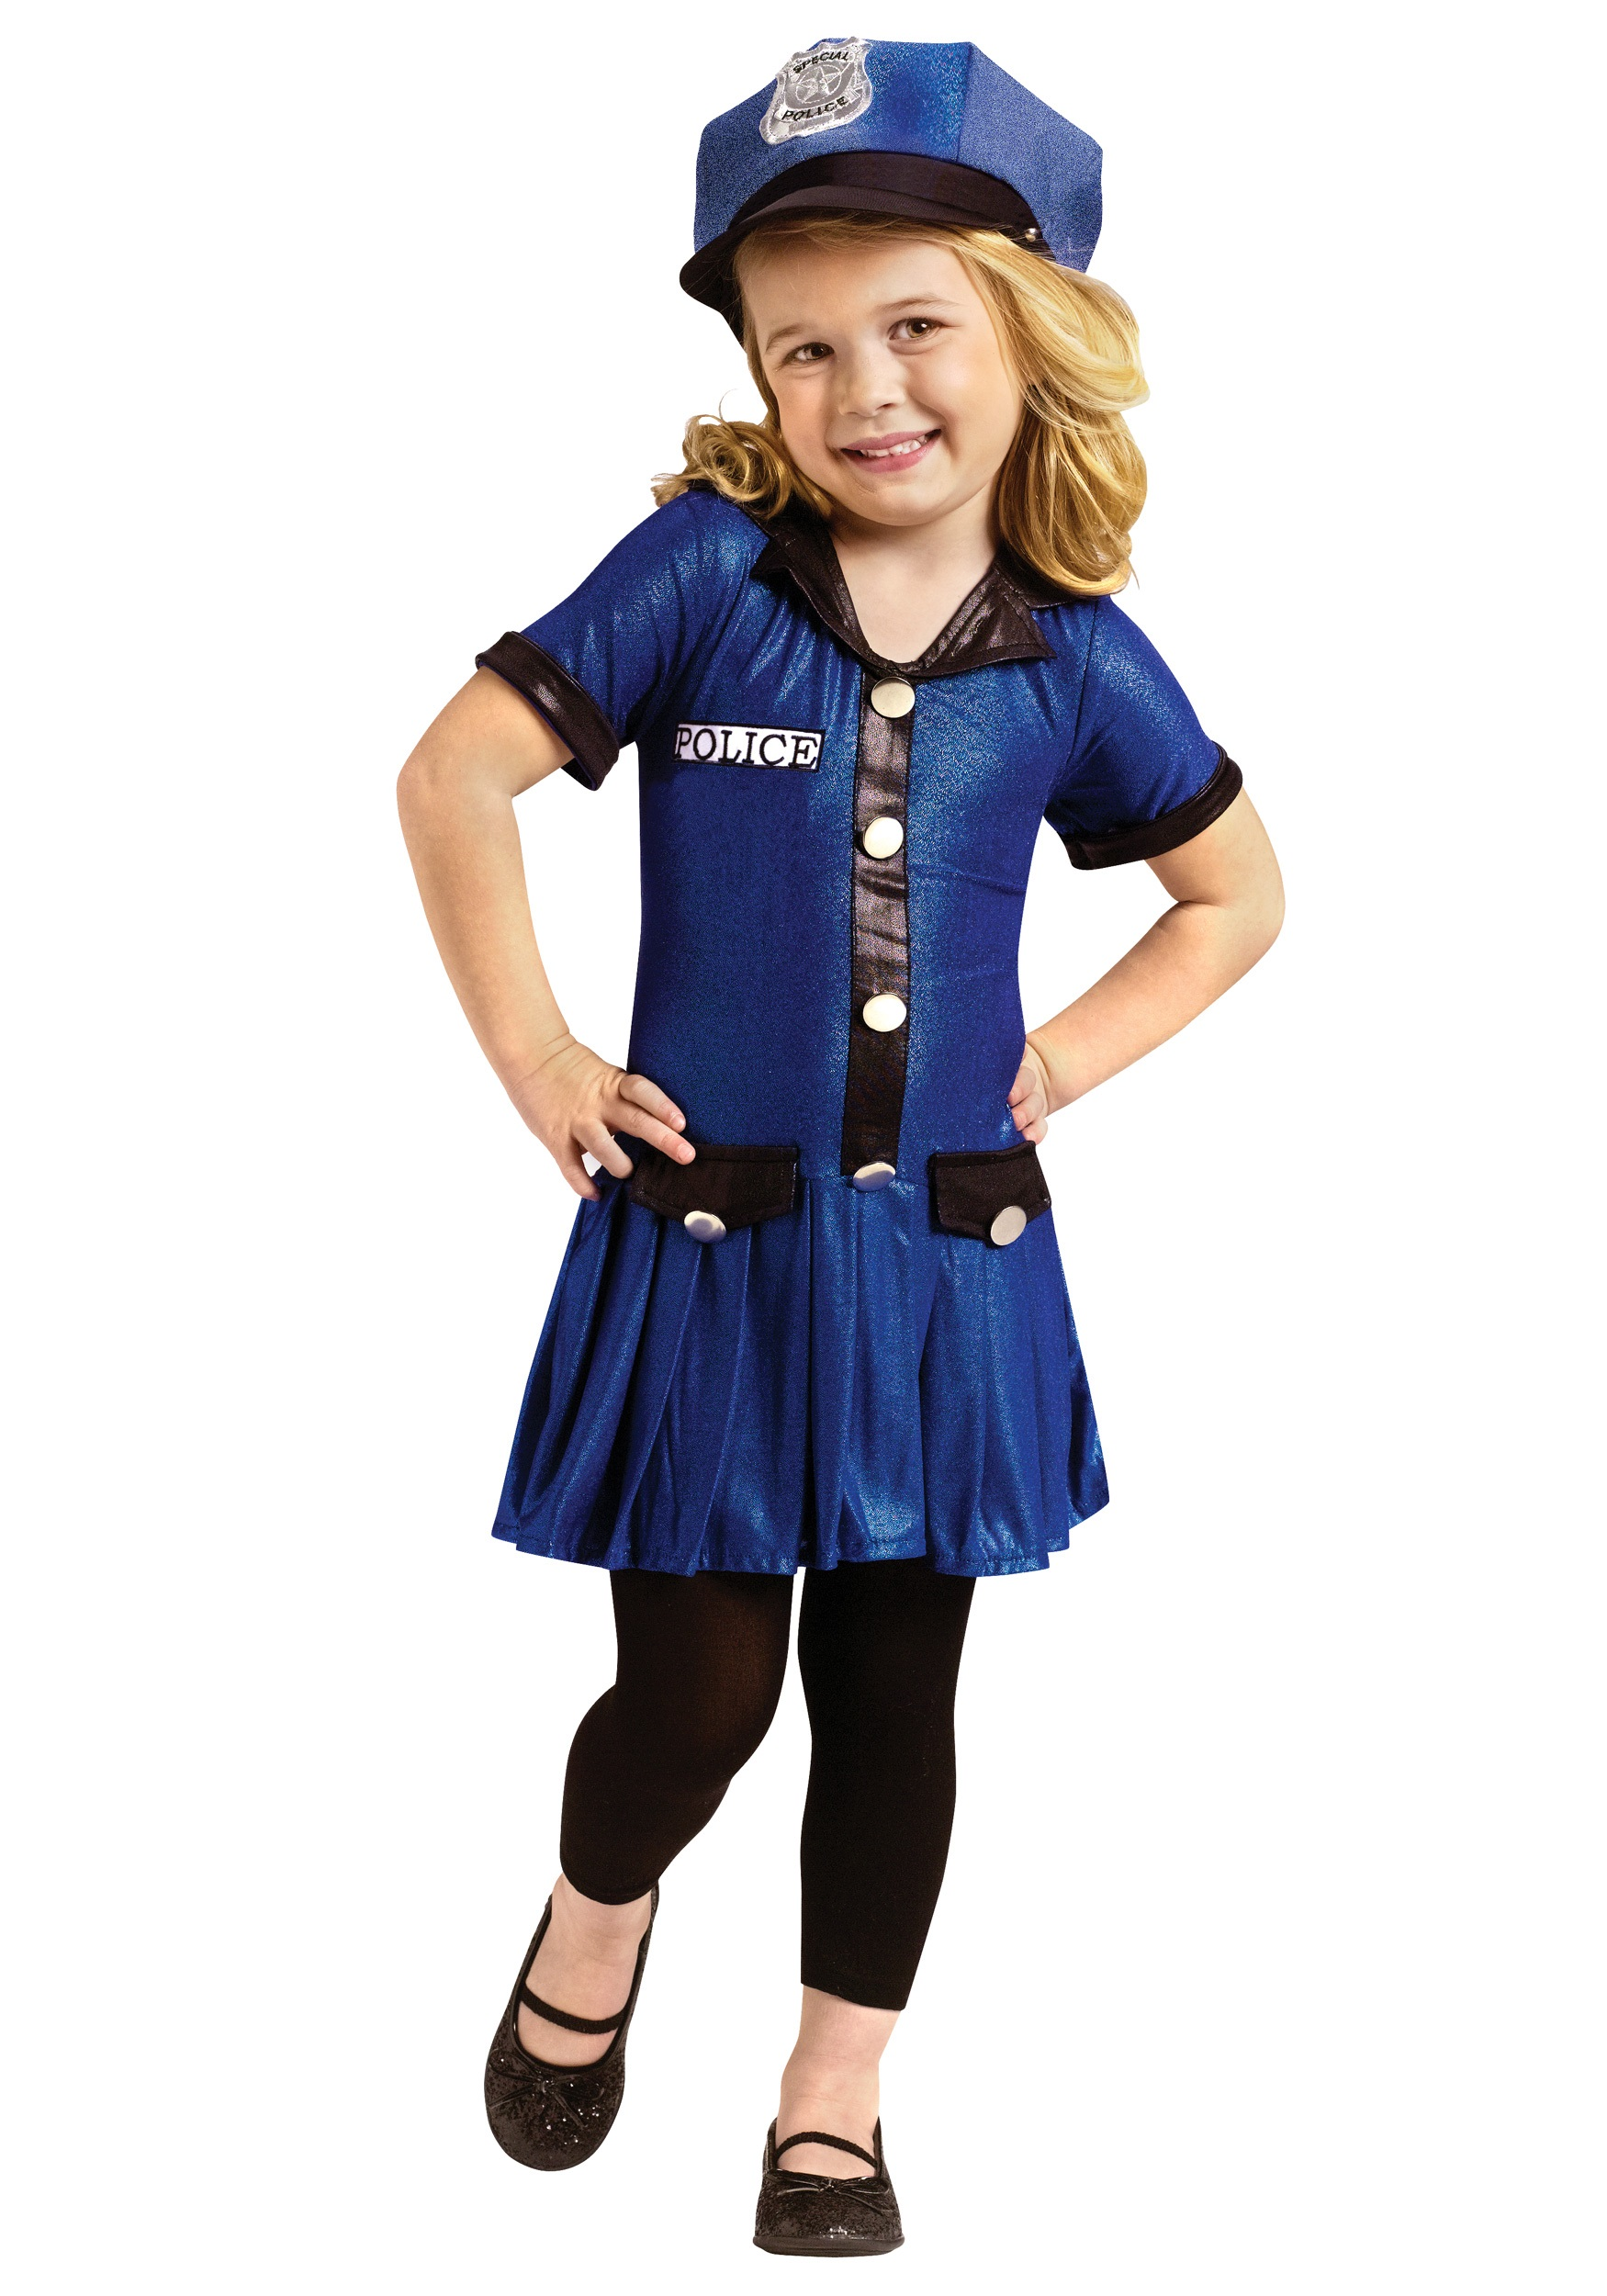 toddler girls police costume